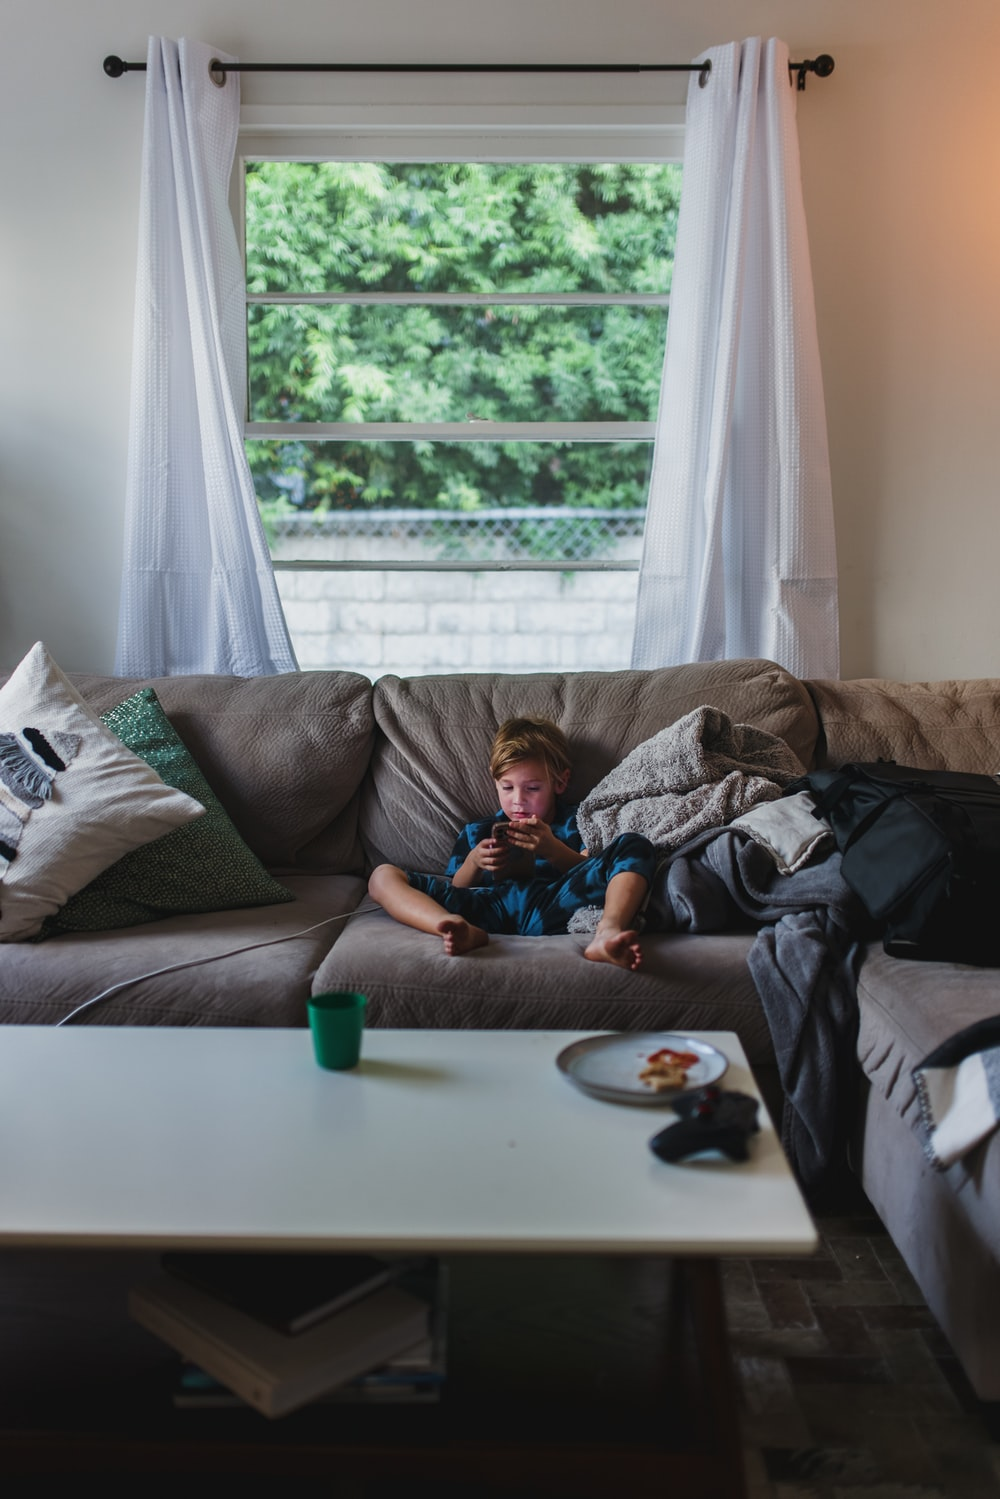 boy in blue shirt lying on gray couch